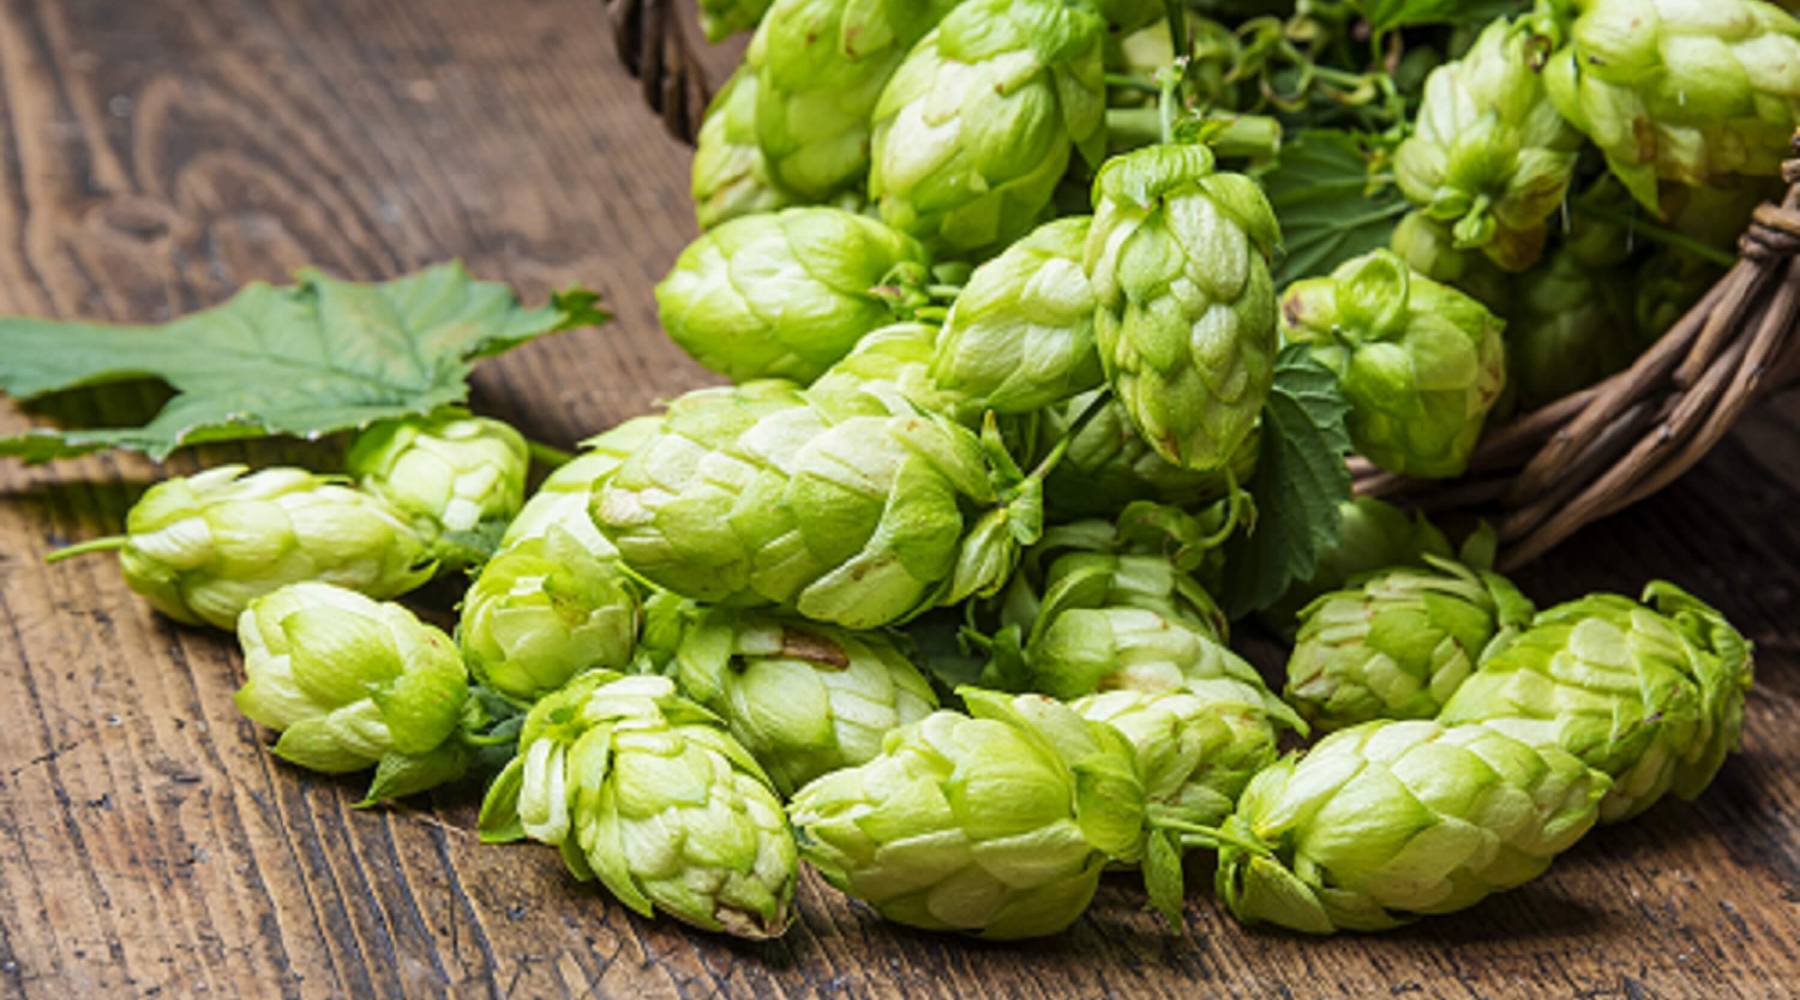 Citra Hops Spilling out of Basket